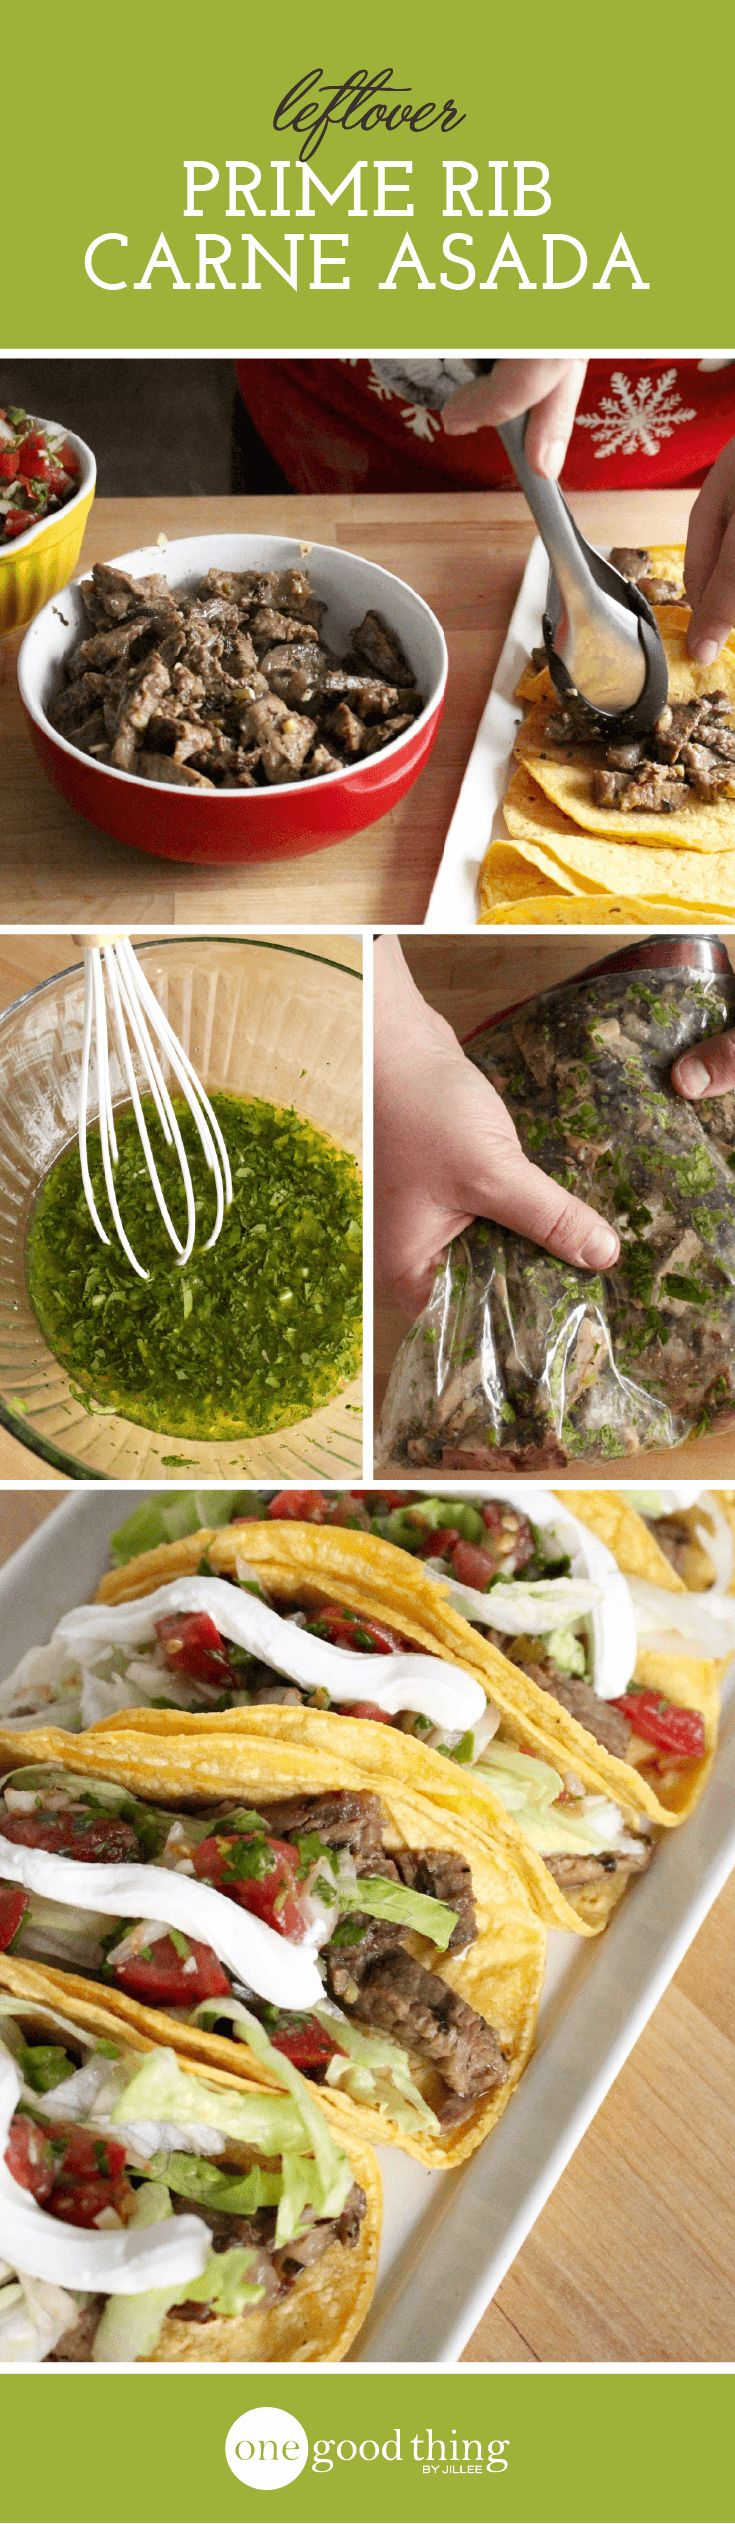 Any time I make prime rib, I make more than I need JUST so I can make these carne asada tacos. Trust me, you'll want to try this one!